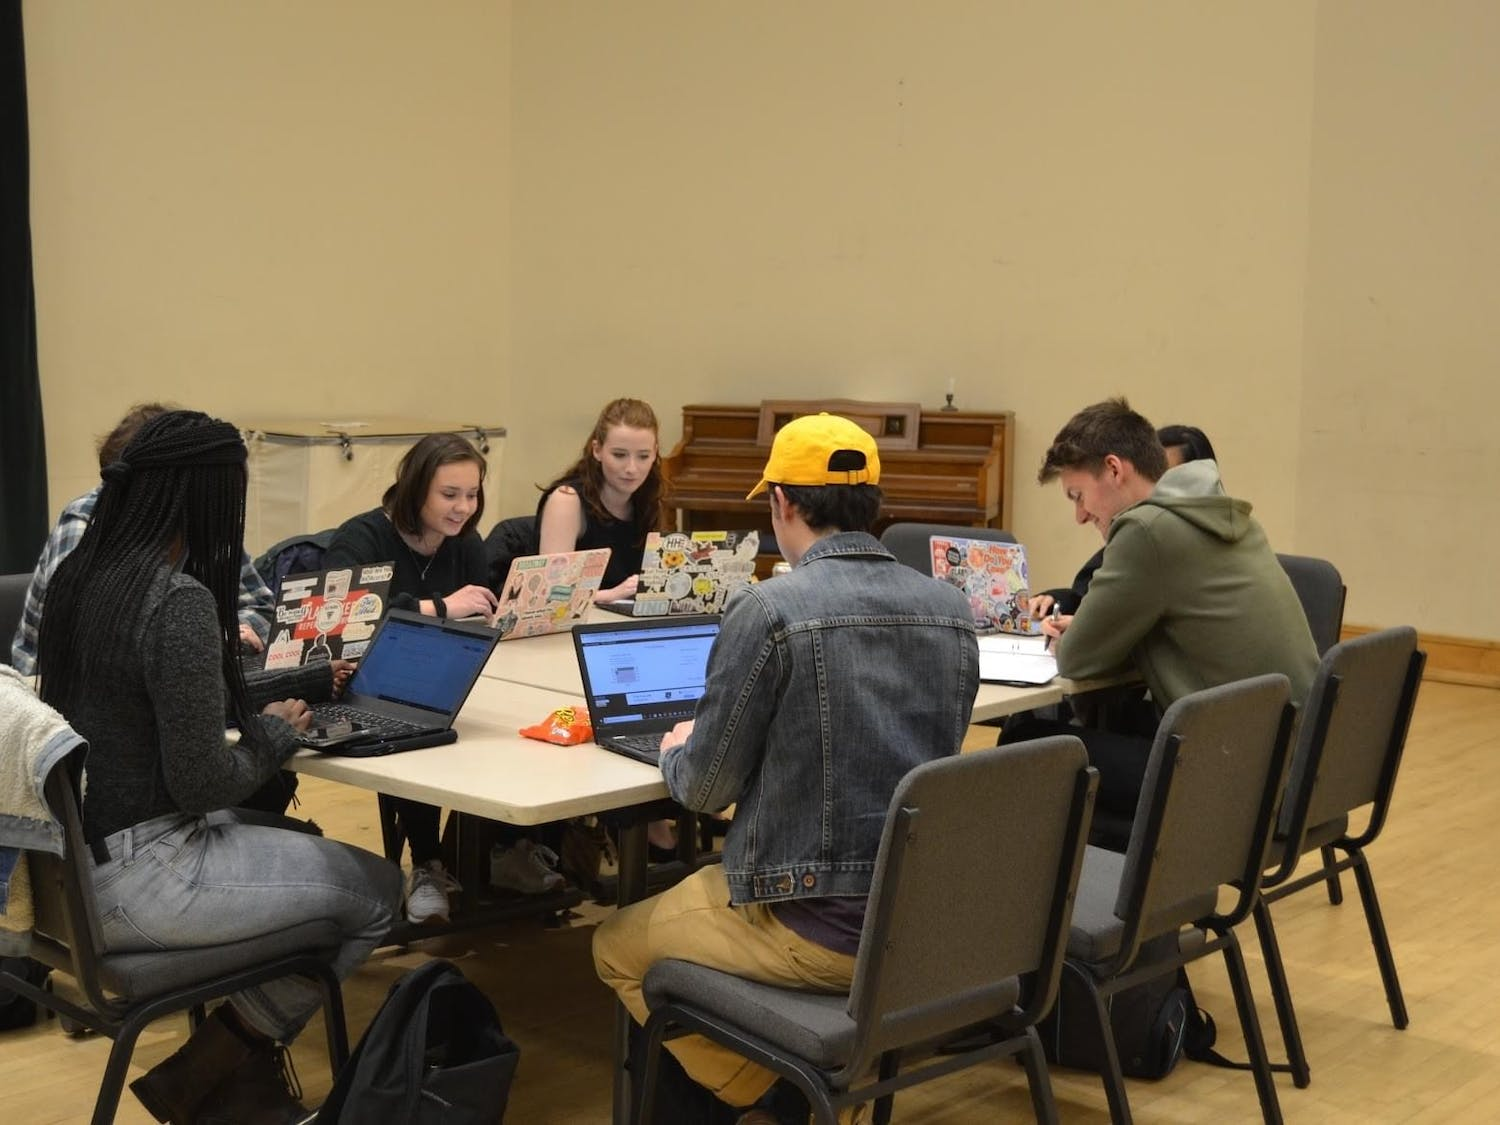 Cast members read the finalized script from LAB! Theatre's commission project last year. The play went through multiple table reads of the original student-written piece to develop the final script. Photo courtesy of Matthew Ferris.